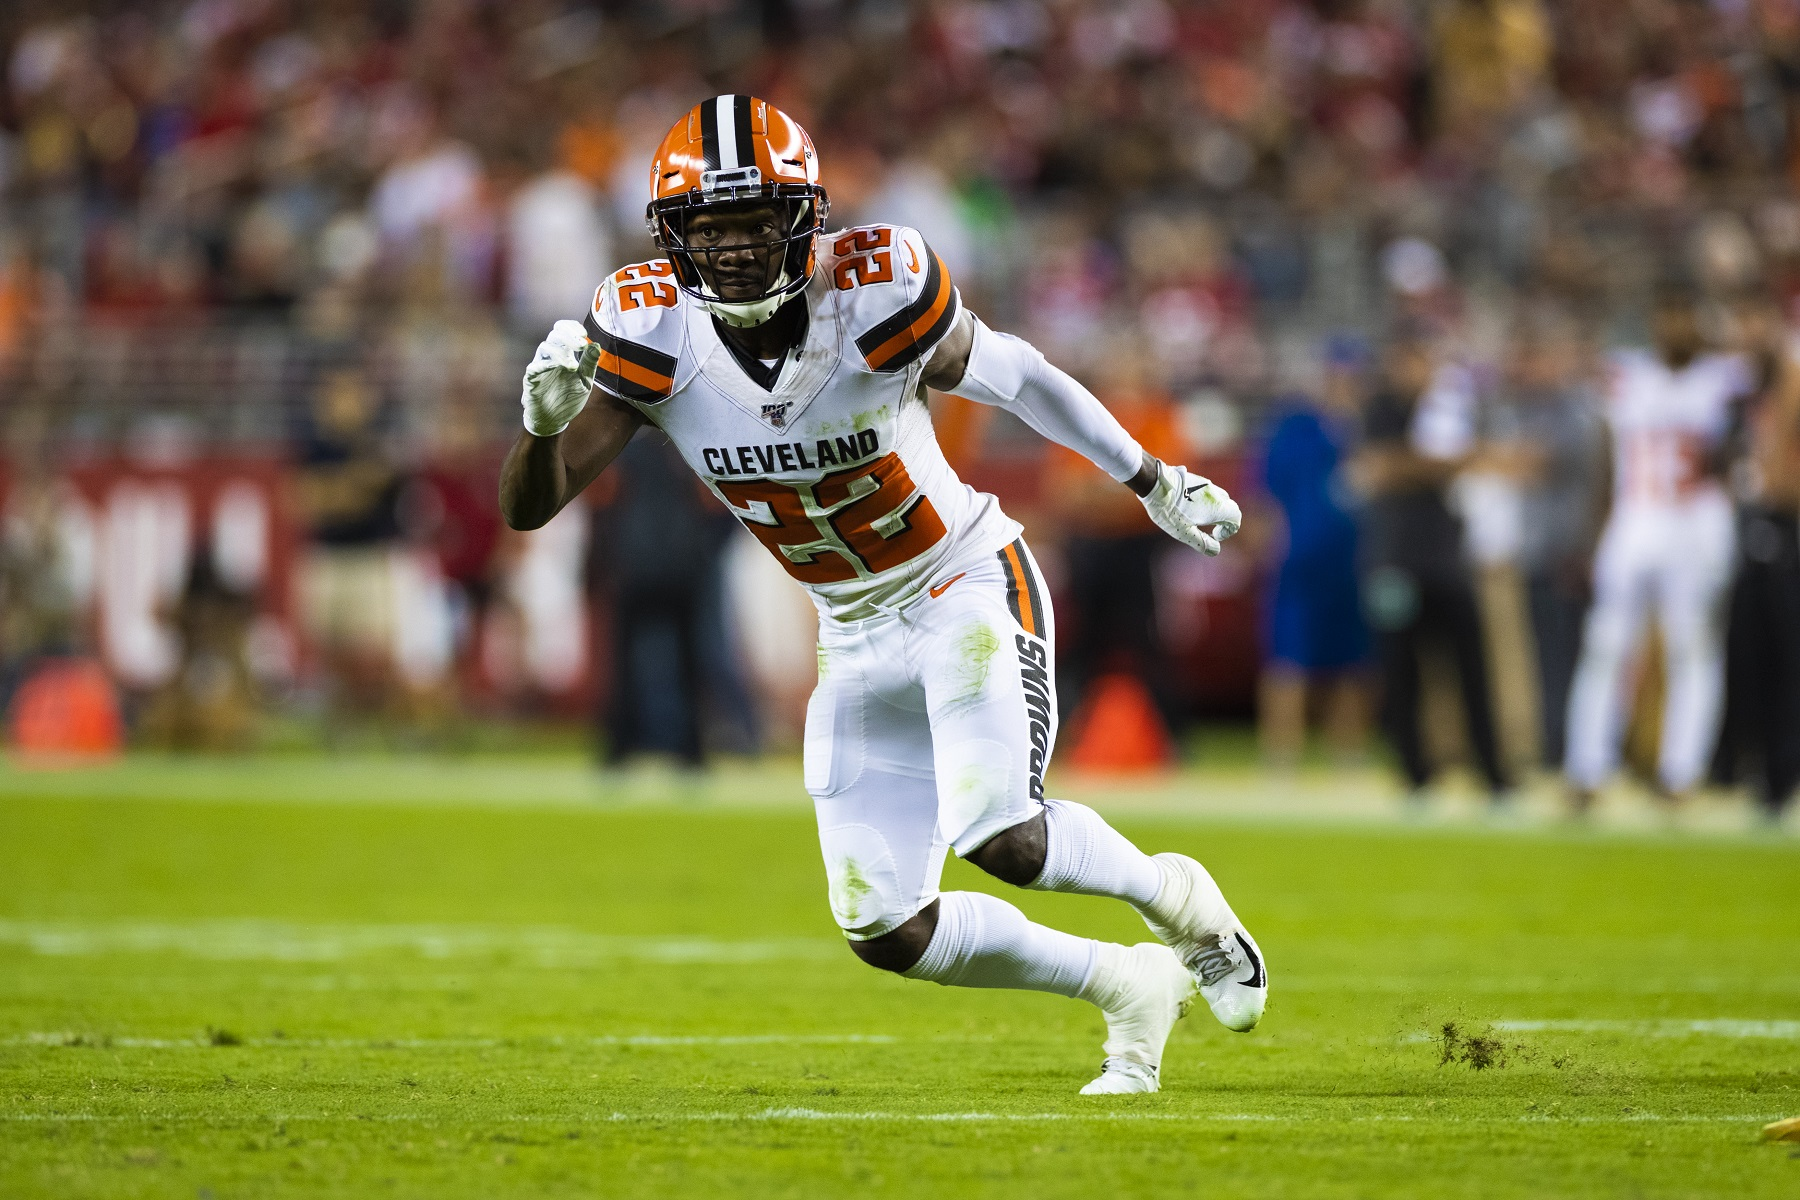 Eric Murray's 2019 season with the Cleveland Browns ended with a knee injury. | Ric Tapia/Icon Sportswire via Getty Images